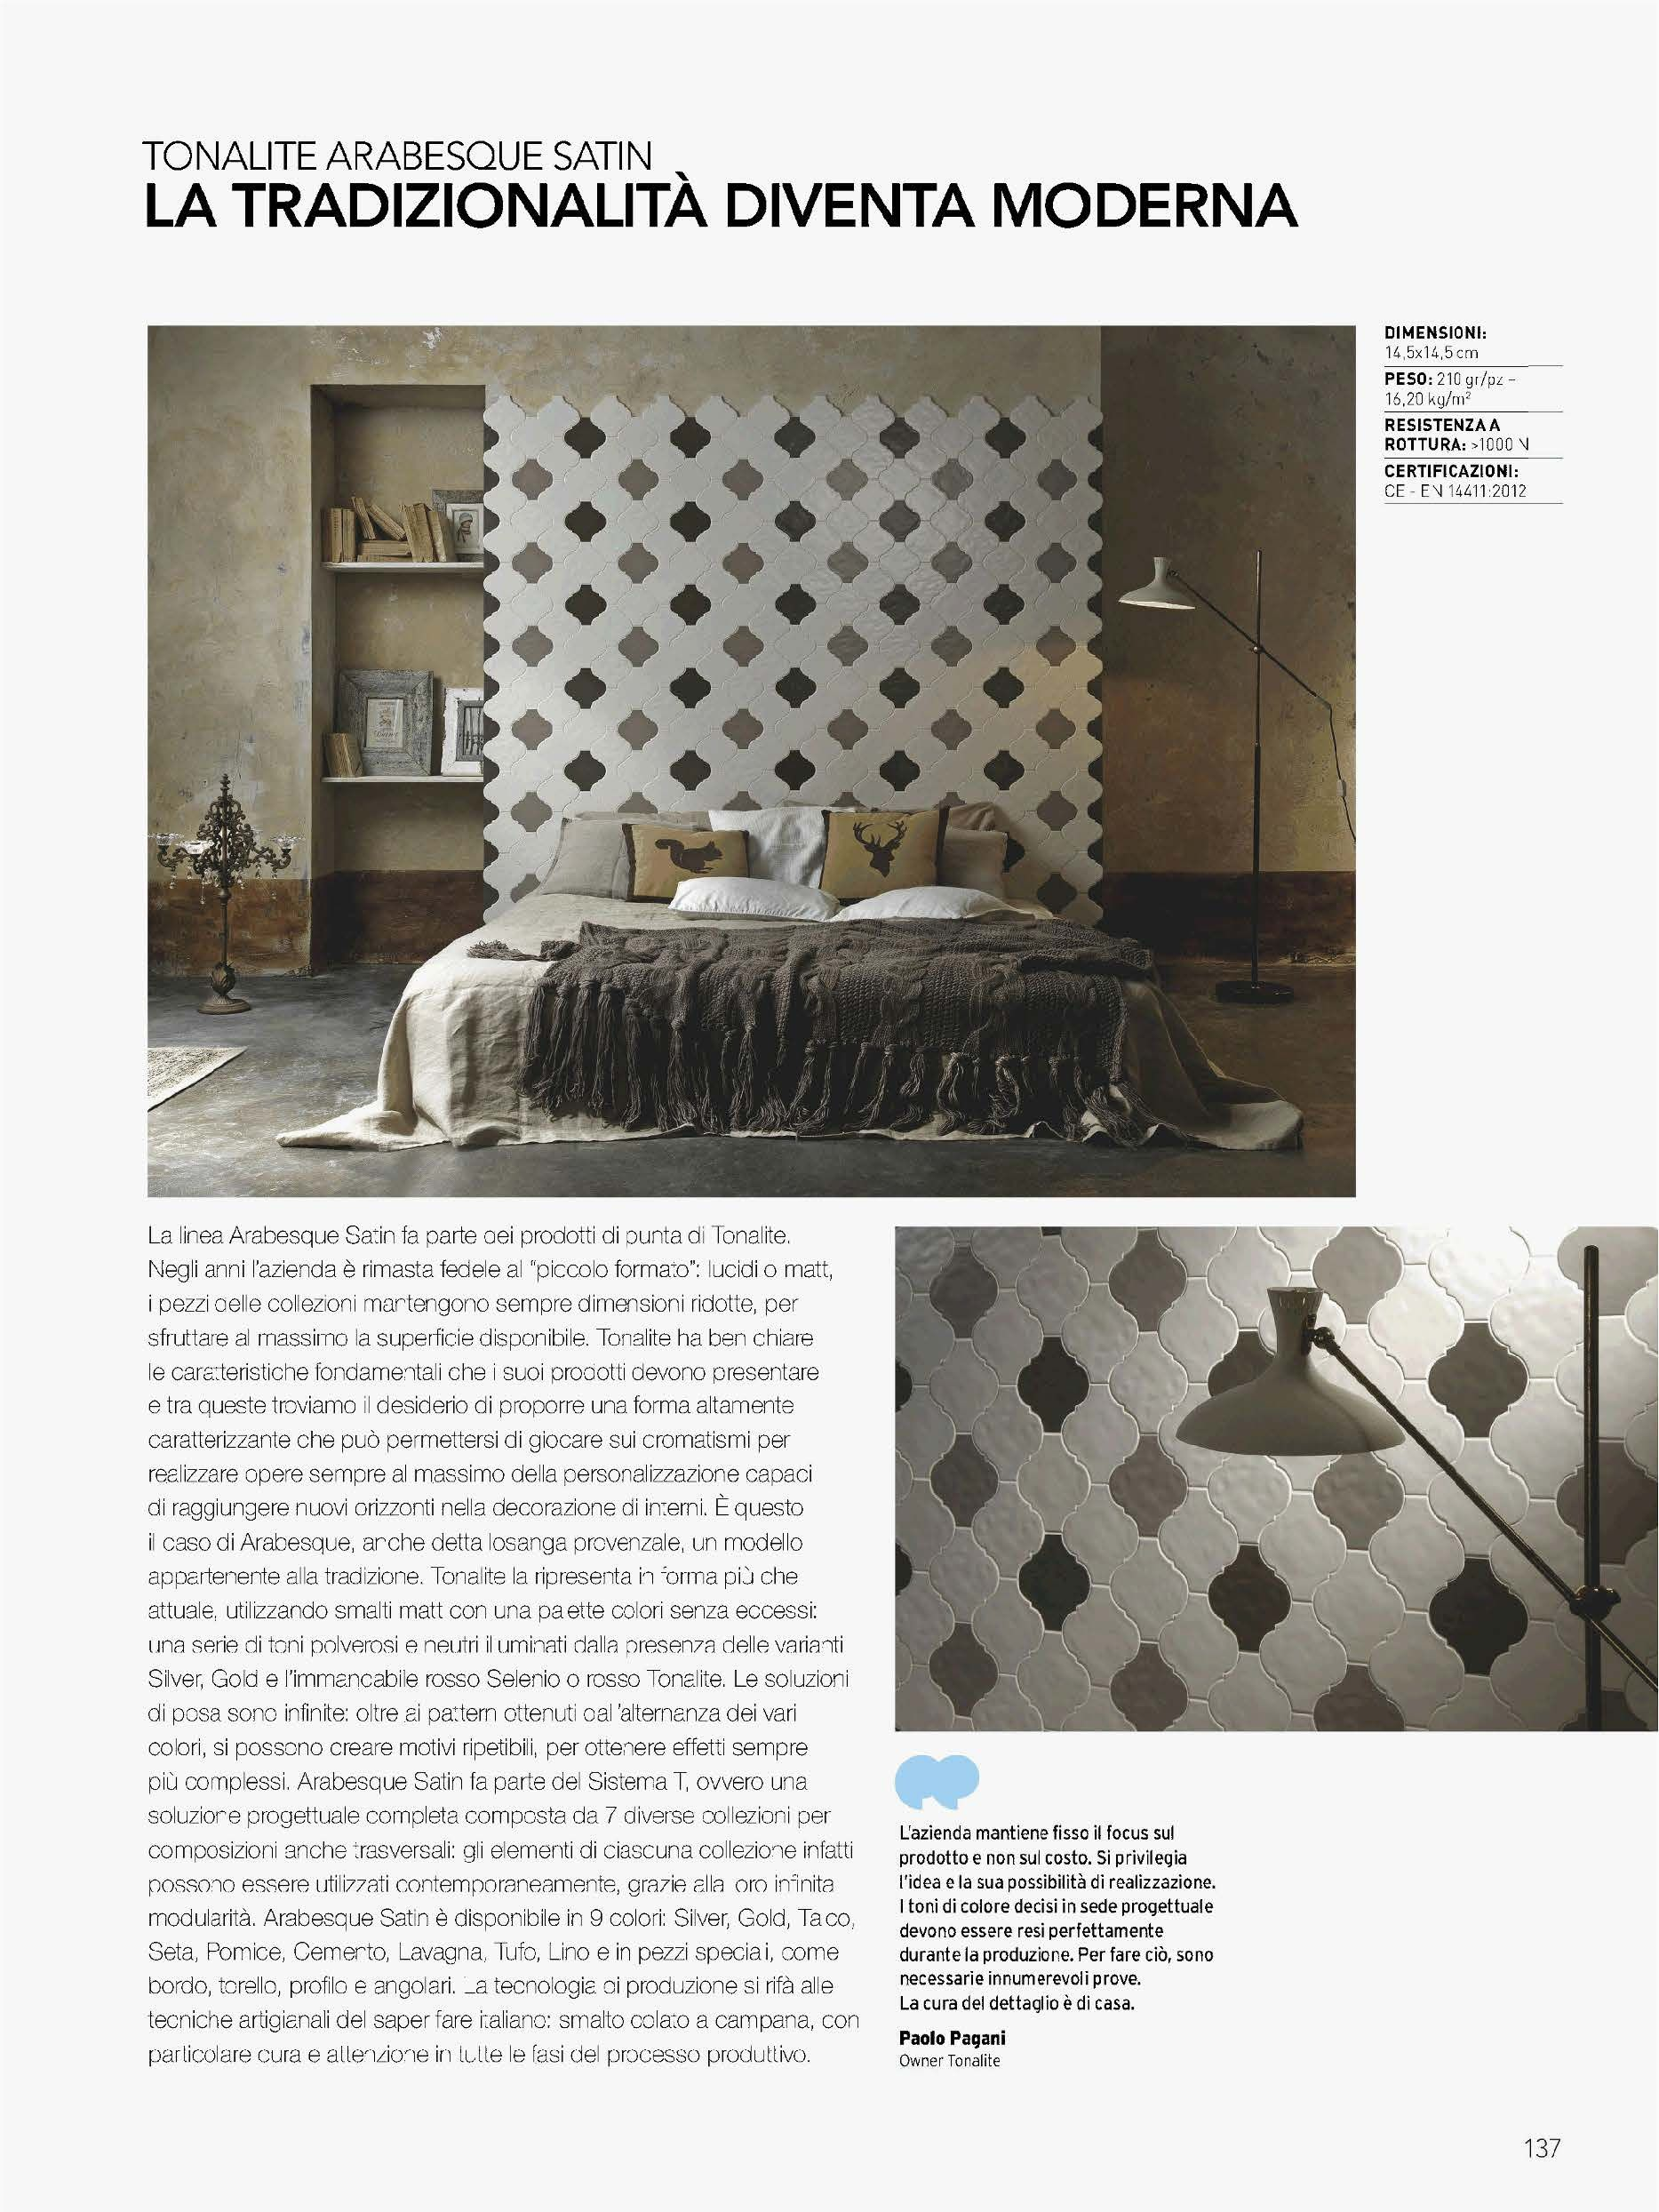 Tonalite S.p.A. is an Italian producer of high-end ceramic and ...